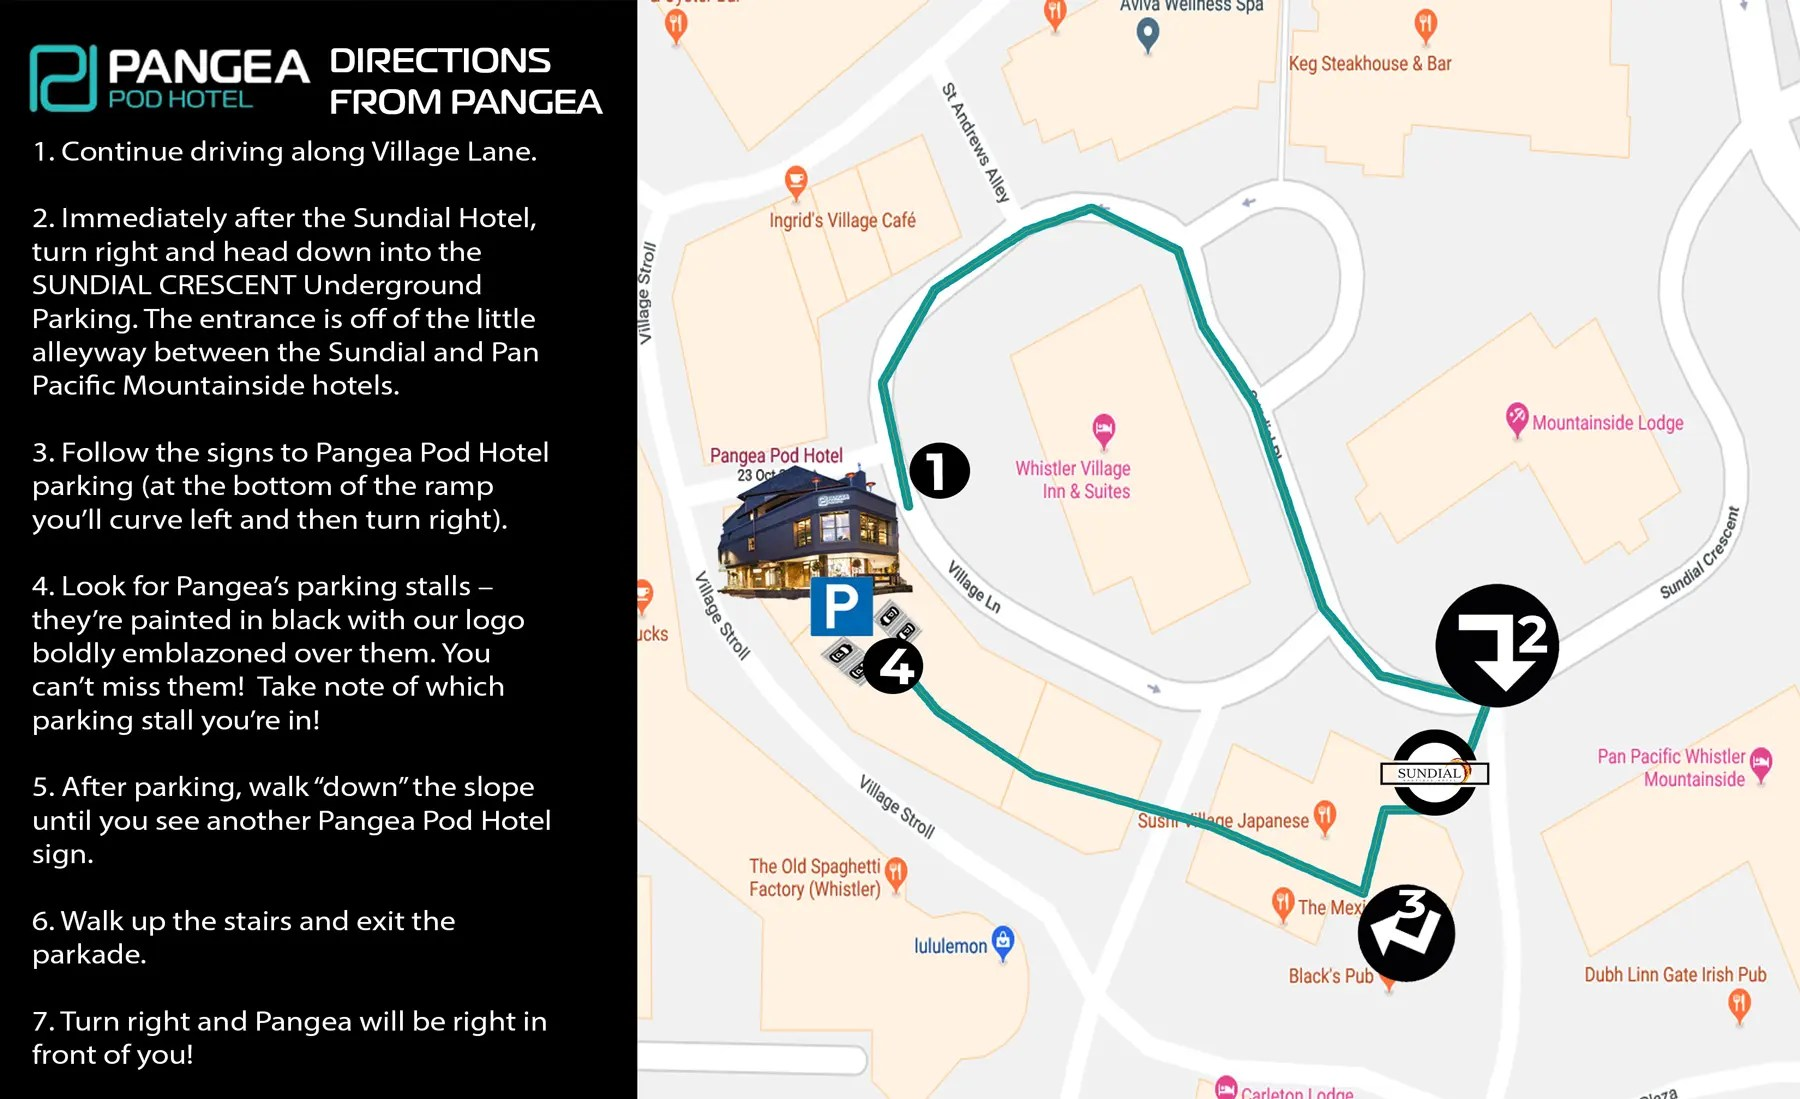 hight resolution of parking directions from pangea 1800